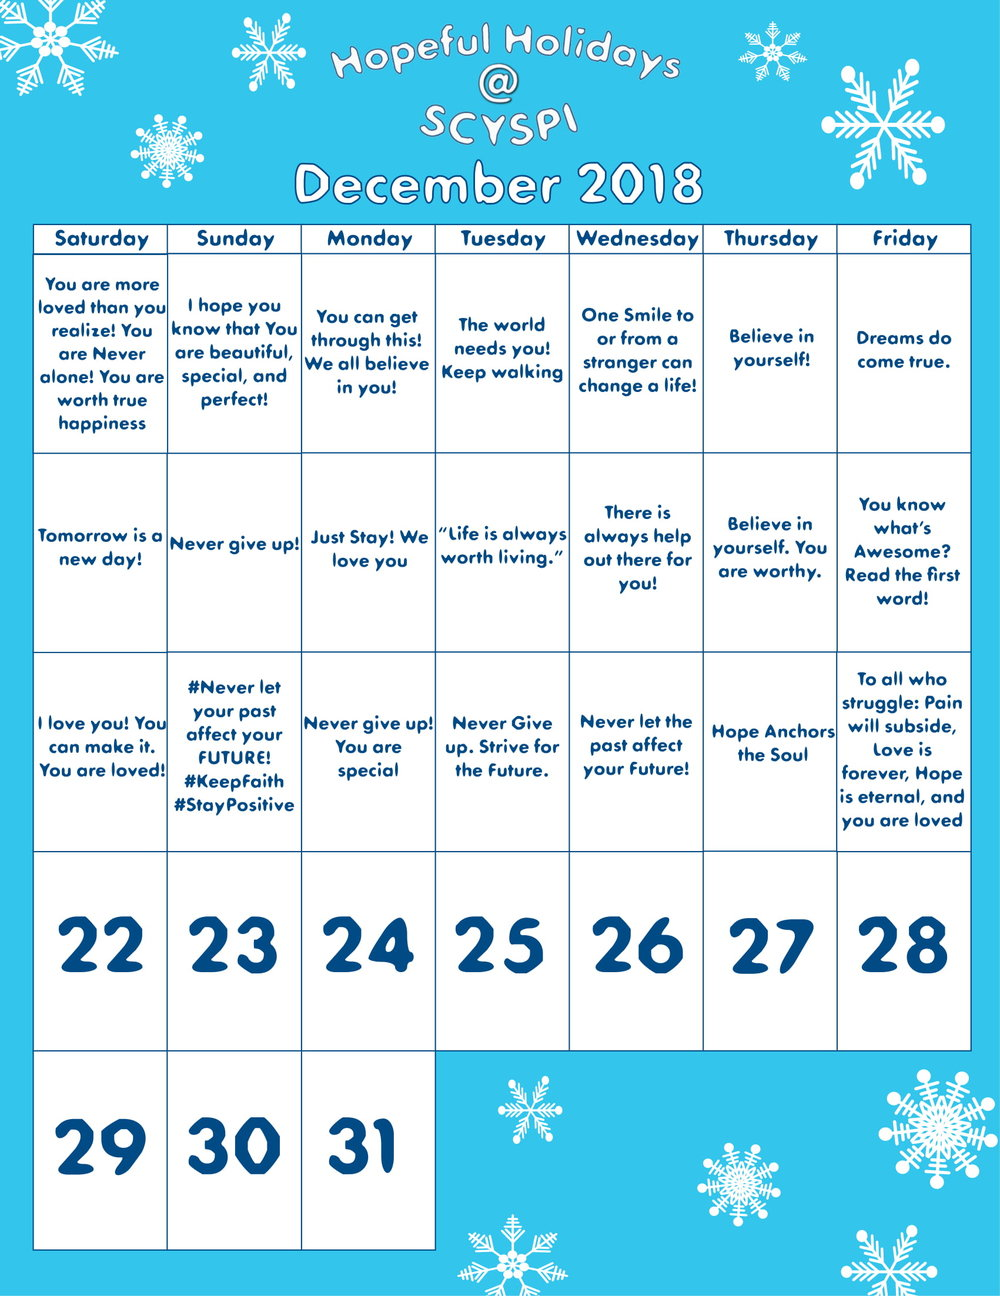 hopeful holidays calendar dec 21st-1.jpg